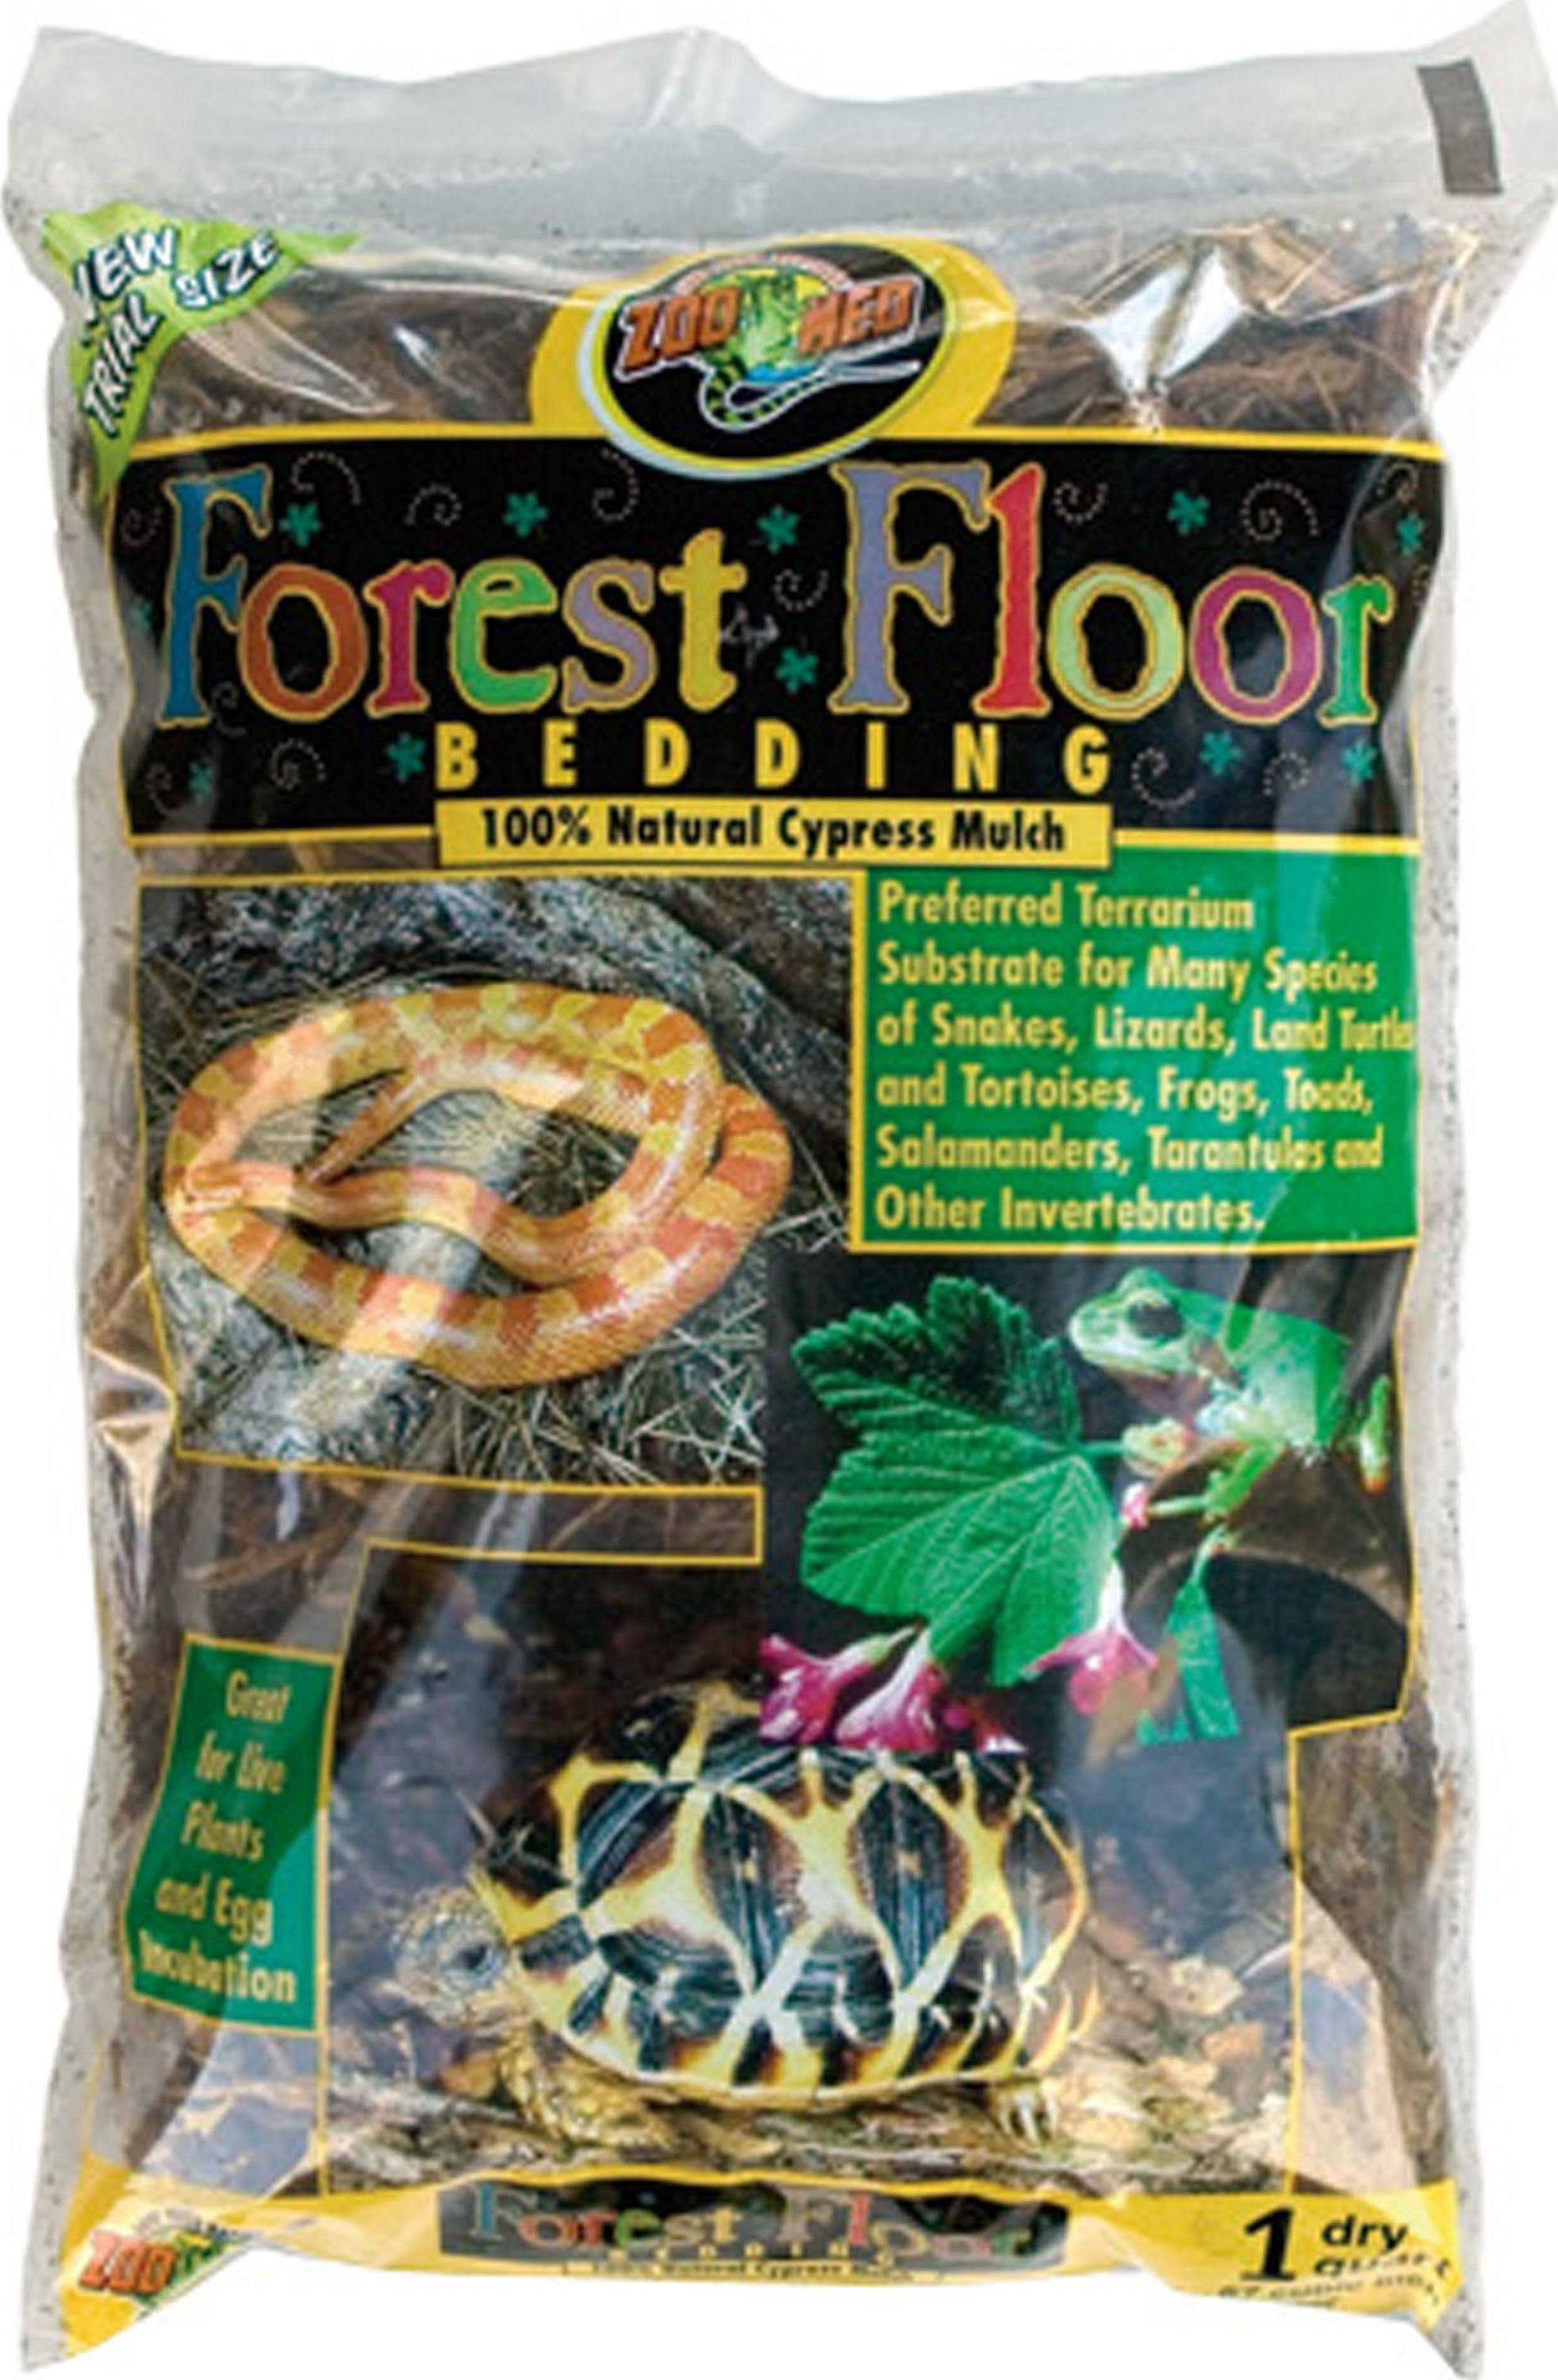 Zoo Med Forest Floor Bedding Reptile Substrate - 8 Quarts